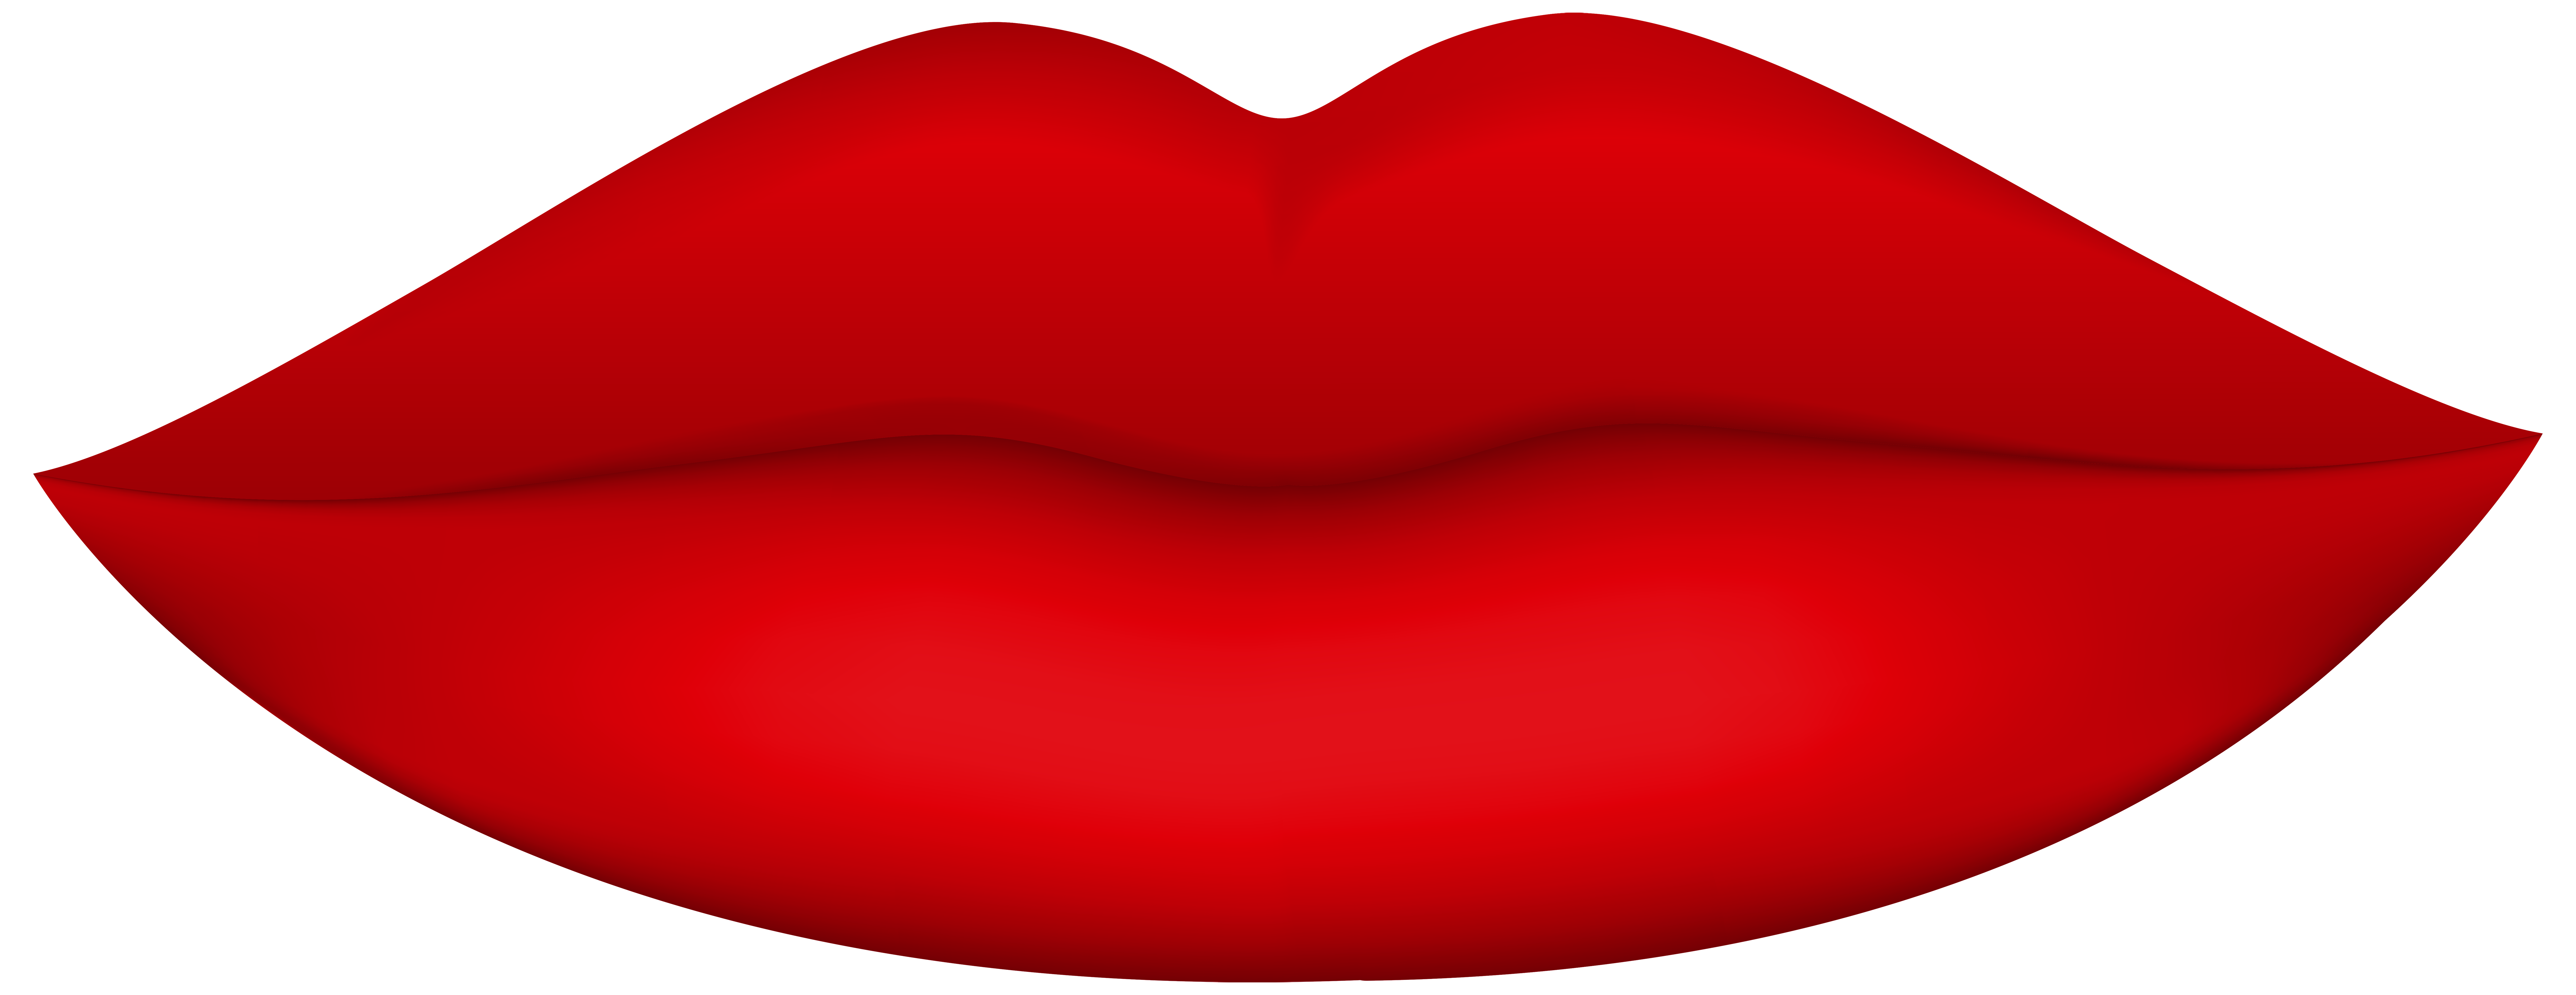 Lips clipart. Red png clip art